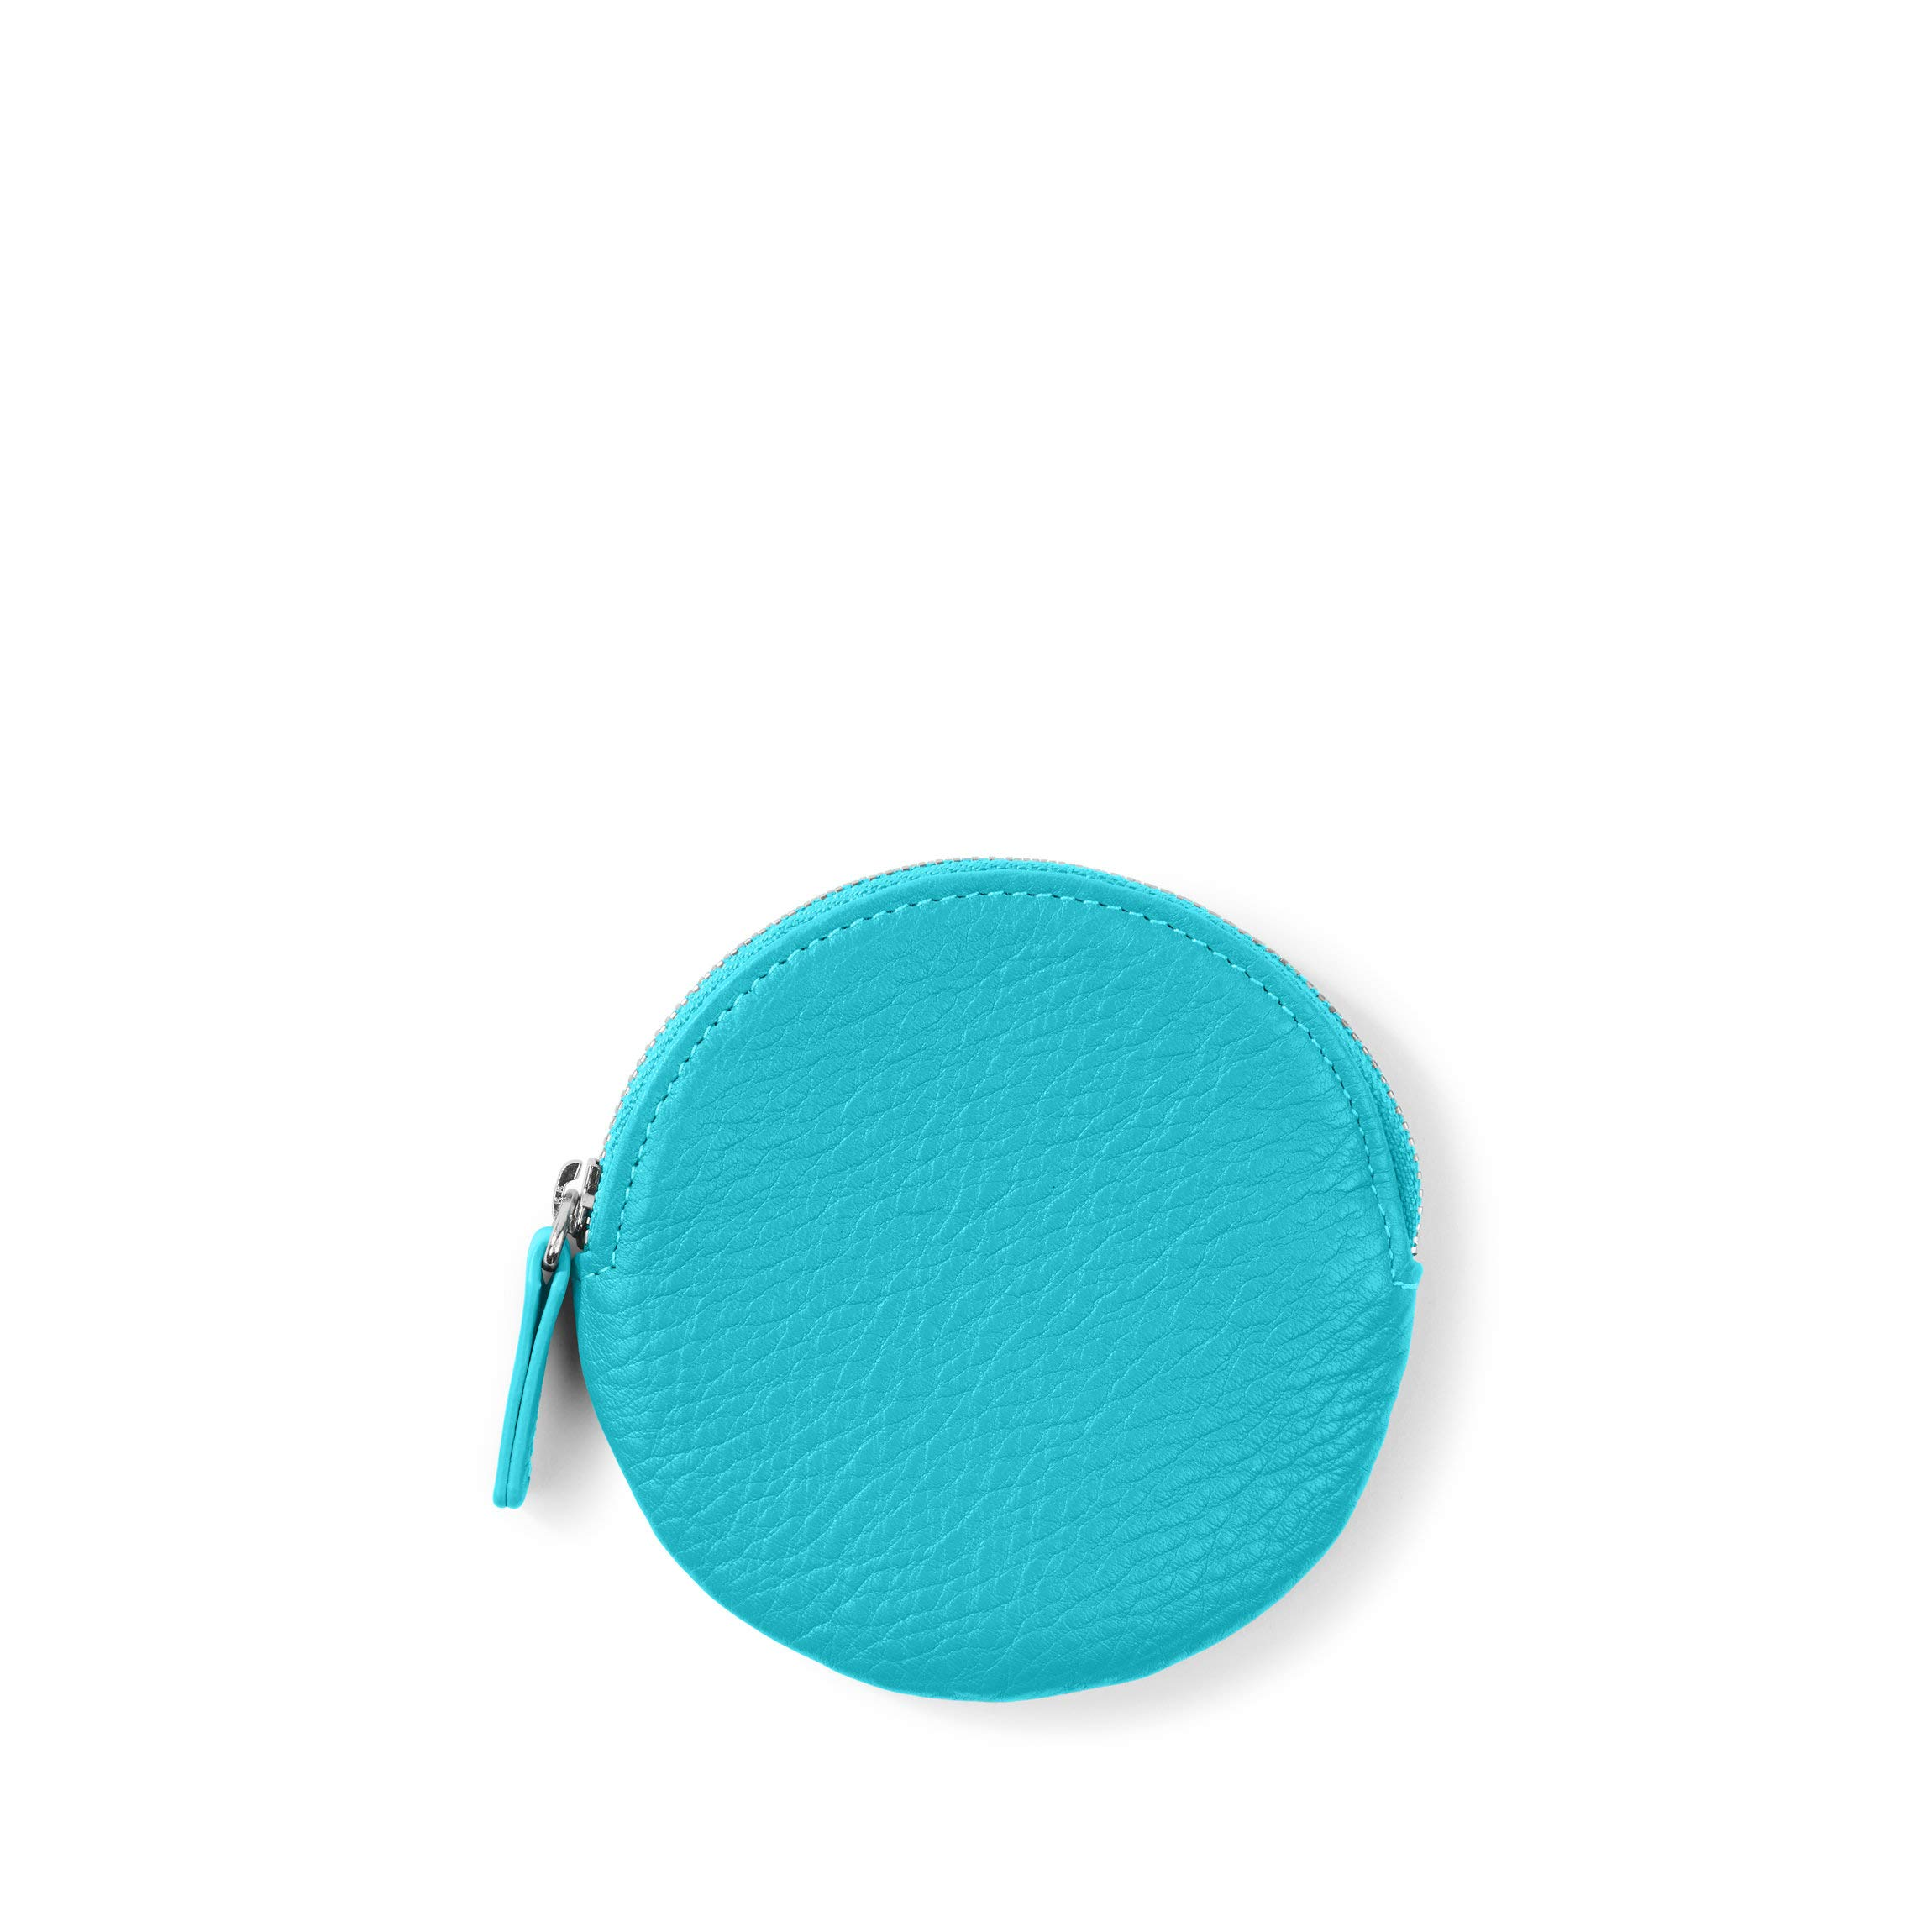 Round Coin Pouch - Full Grain Leather - Teal (blue)